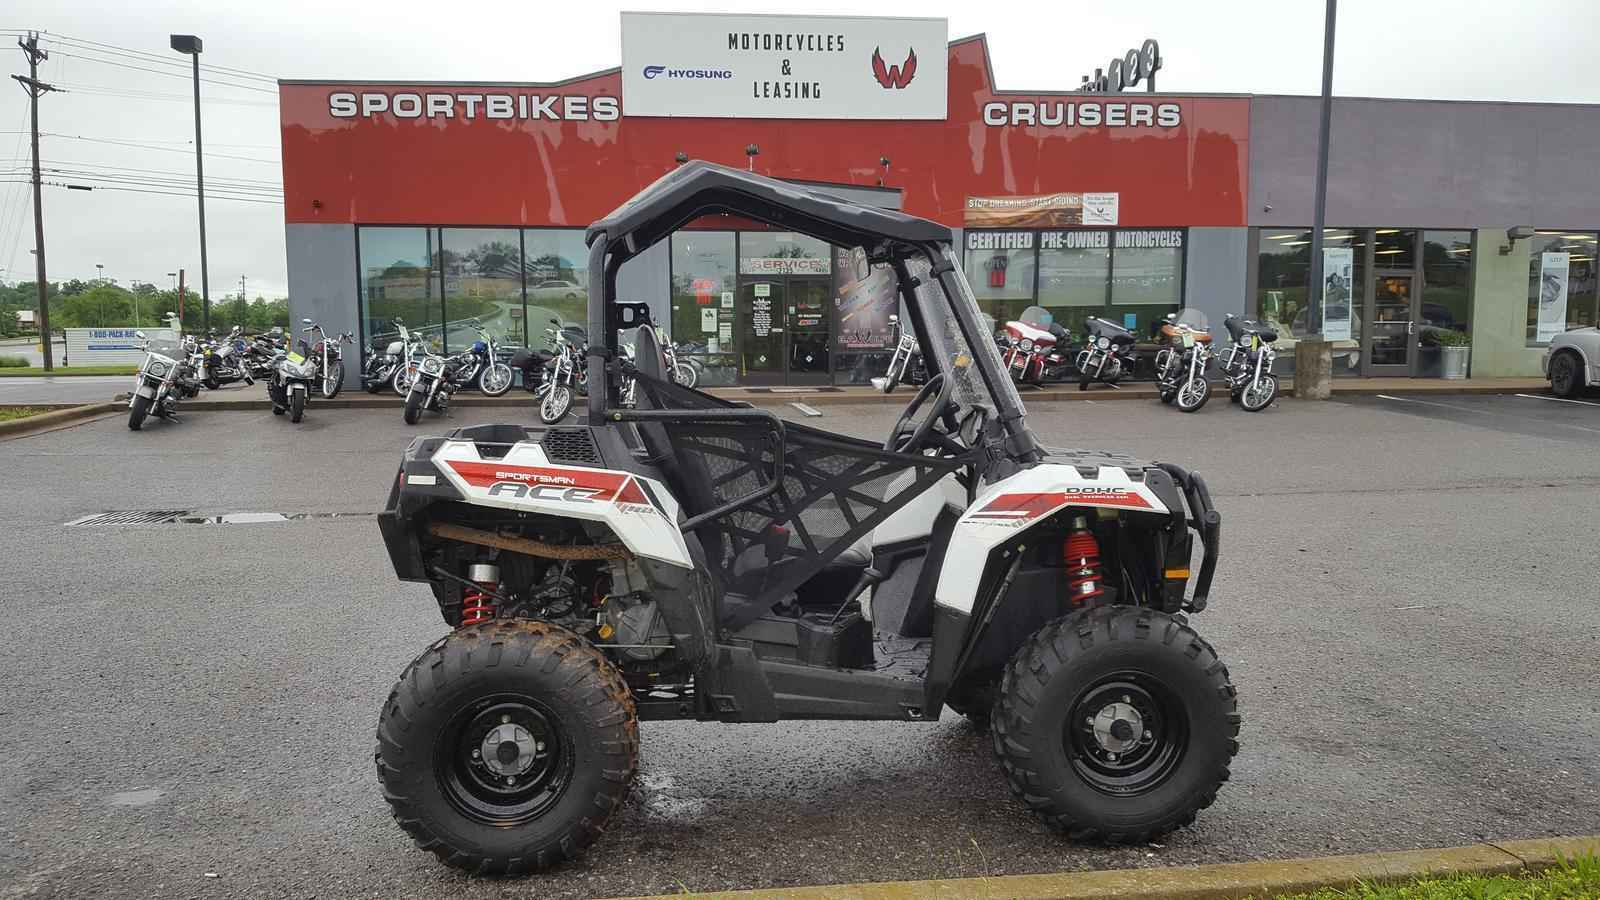 Used 2014 Polaris ACE 325 ATVs For Sale in Tennessee on ...